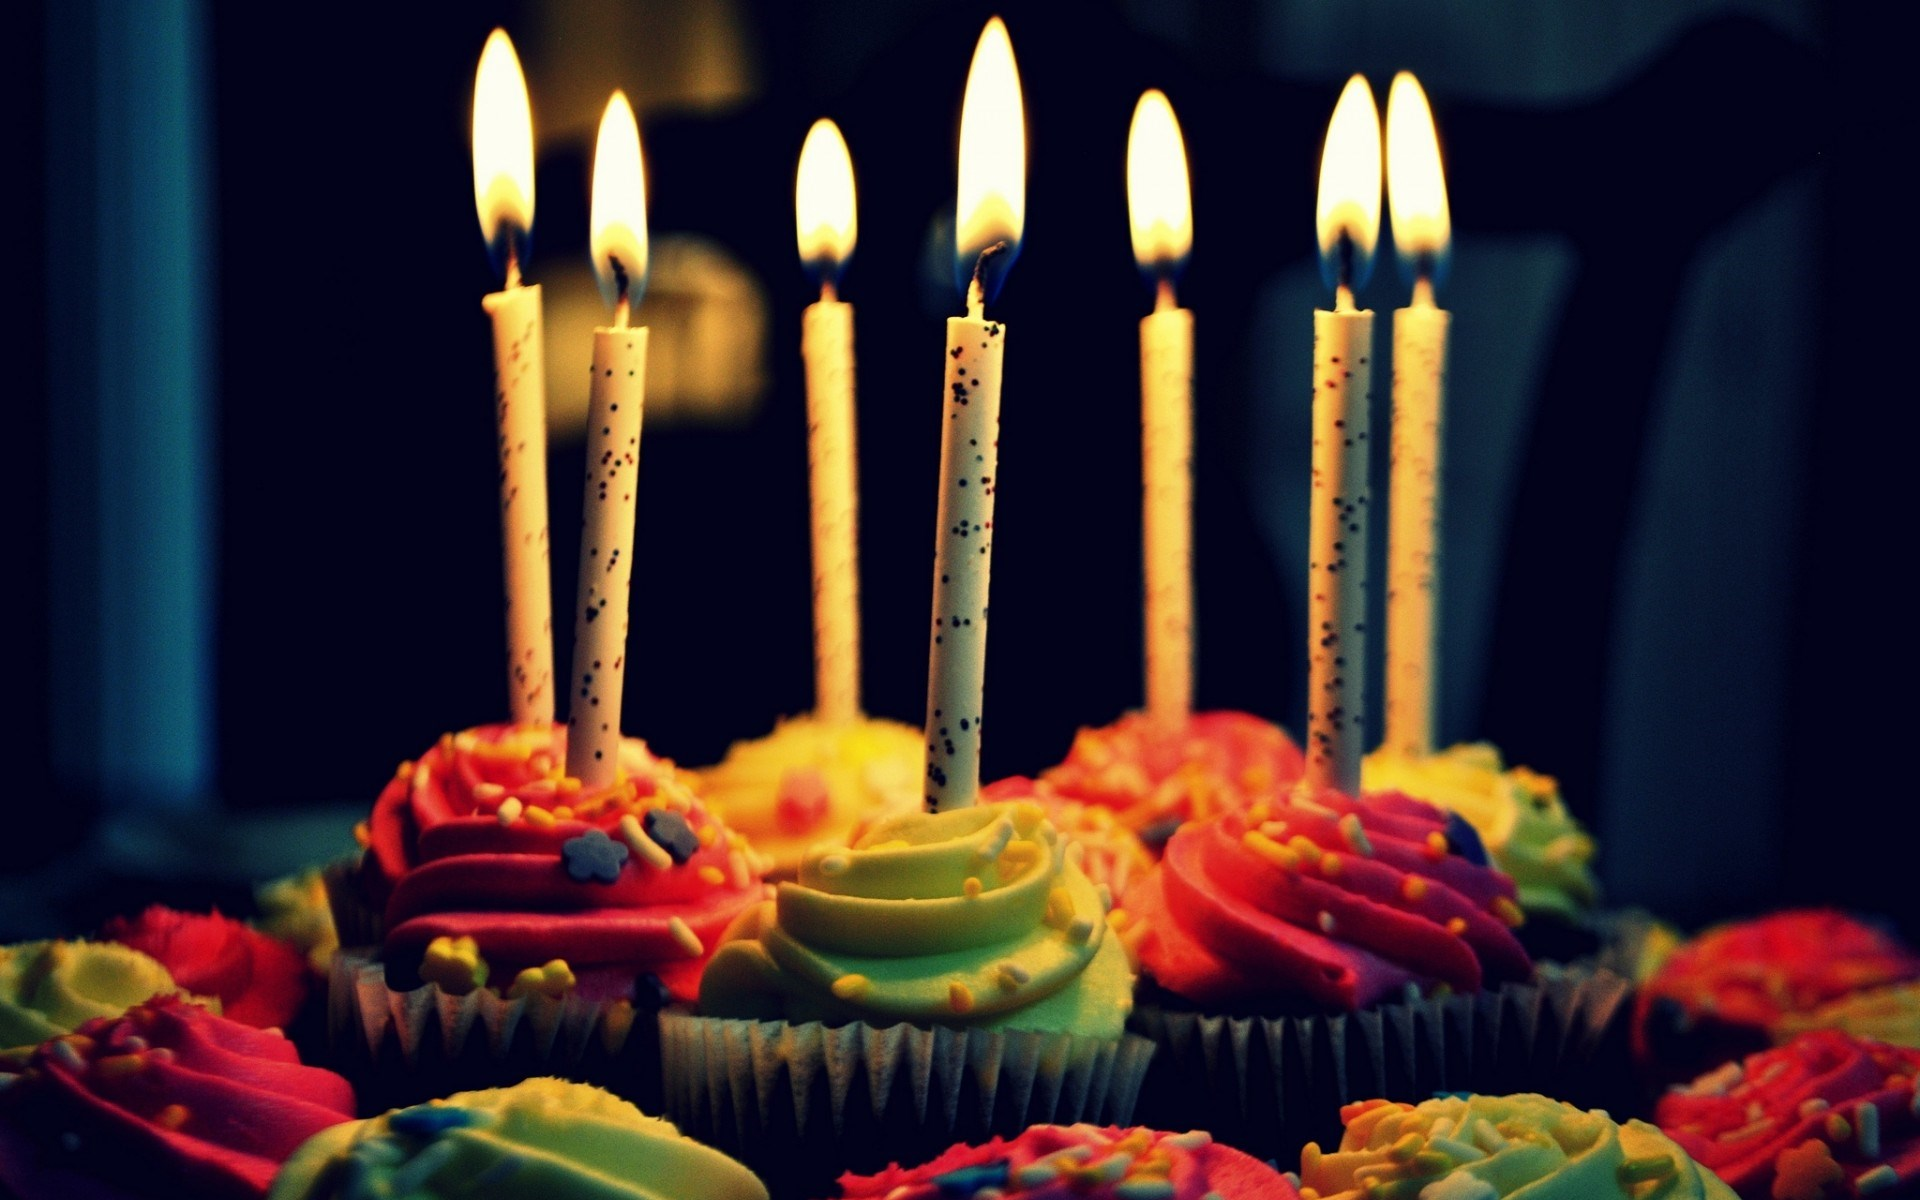 Blowing Birthday Cake Candles May Not Be A Good Thing For Your